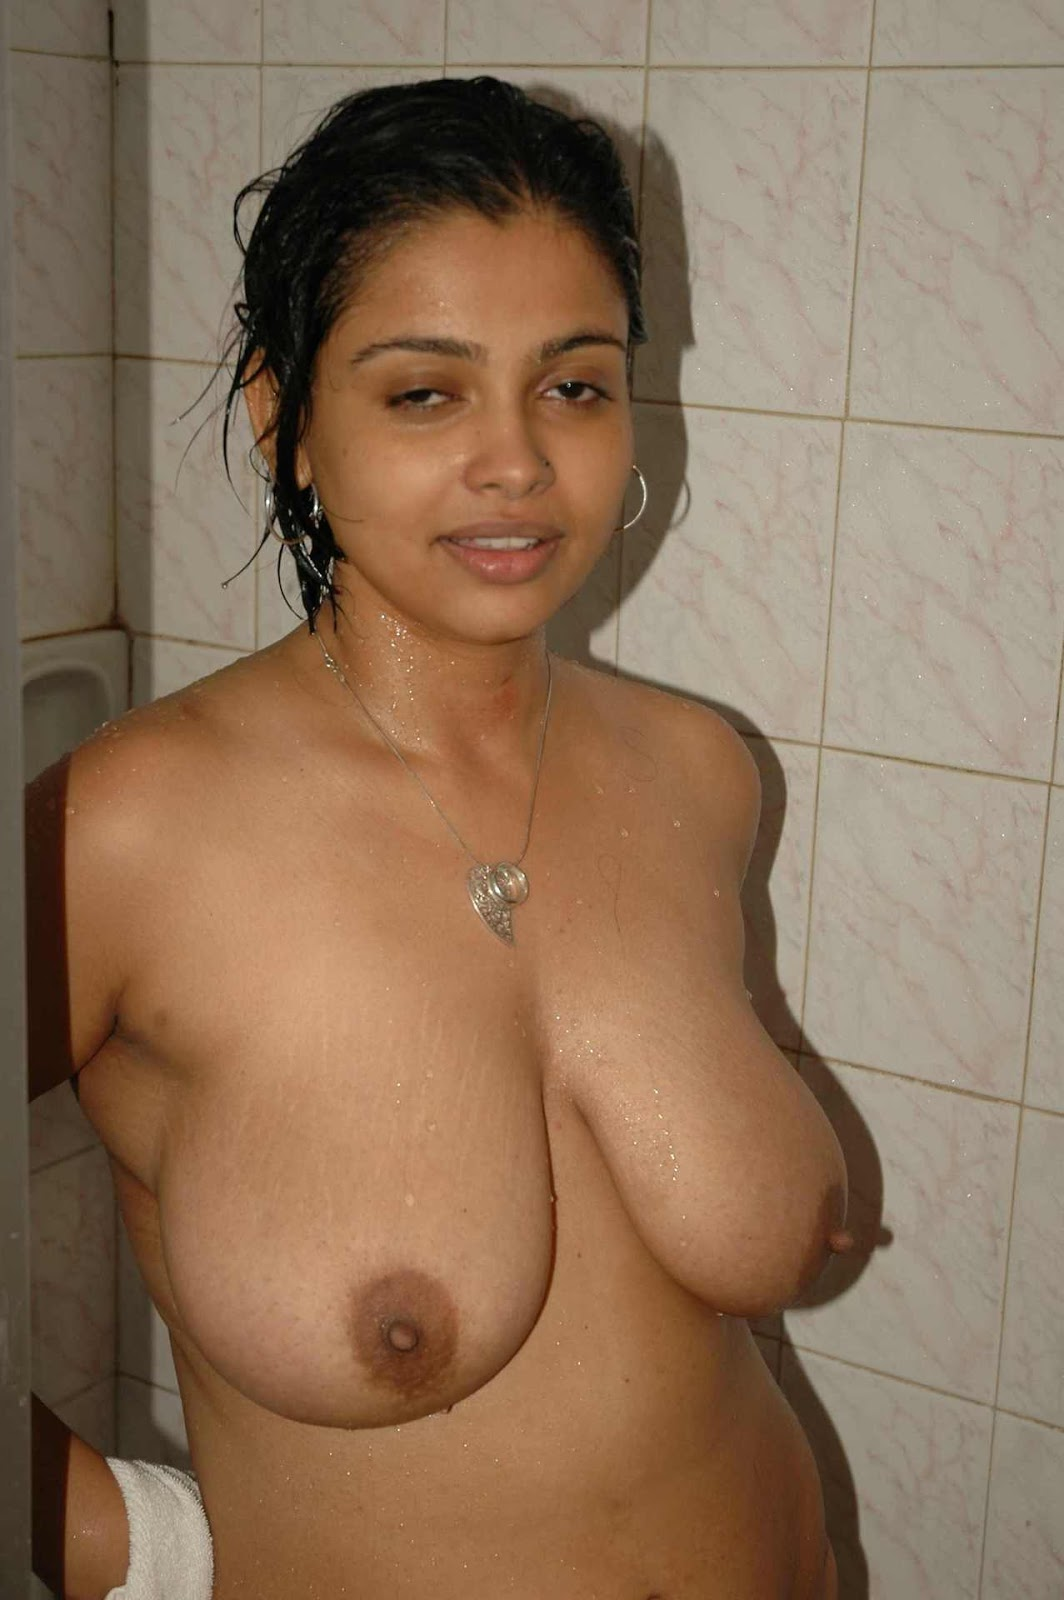 Nangi bangladeshi girl mamme pics collection